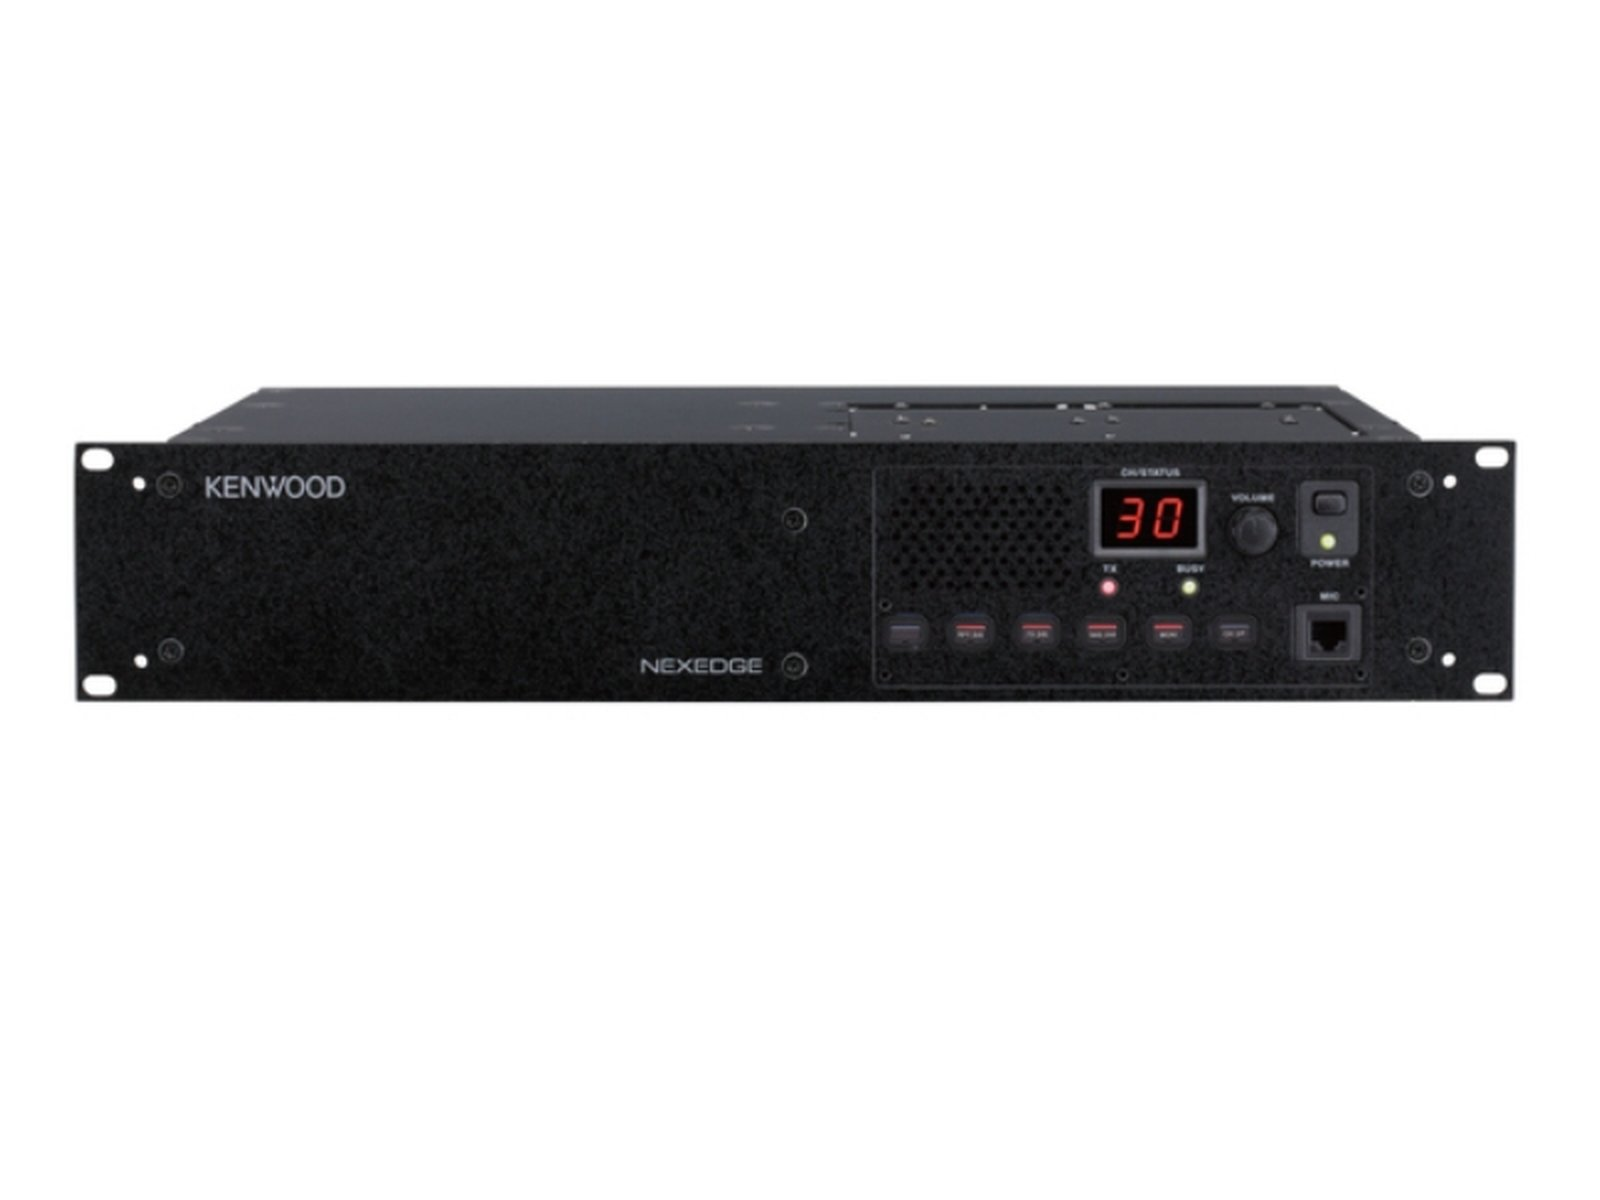 Kenwood NXR-710E VHF Repeater